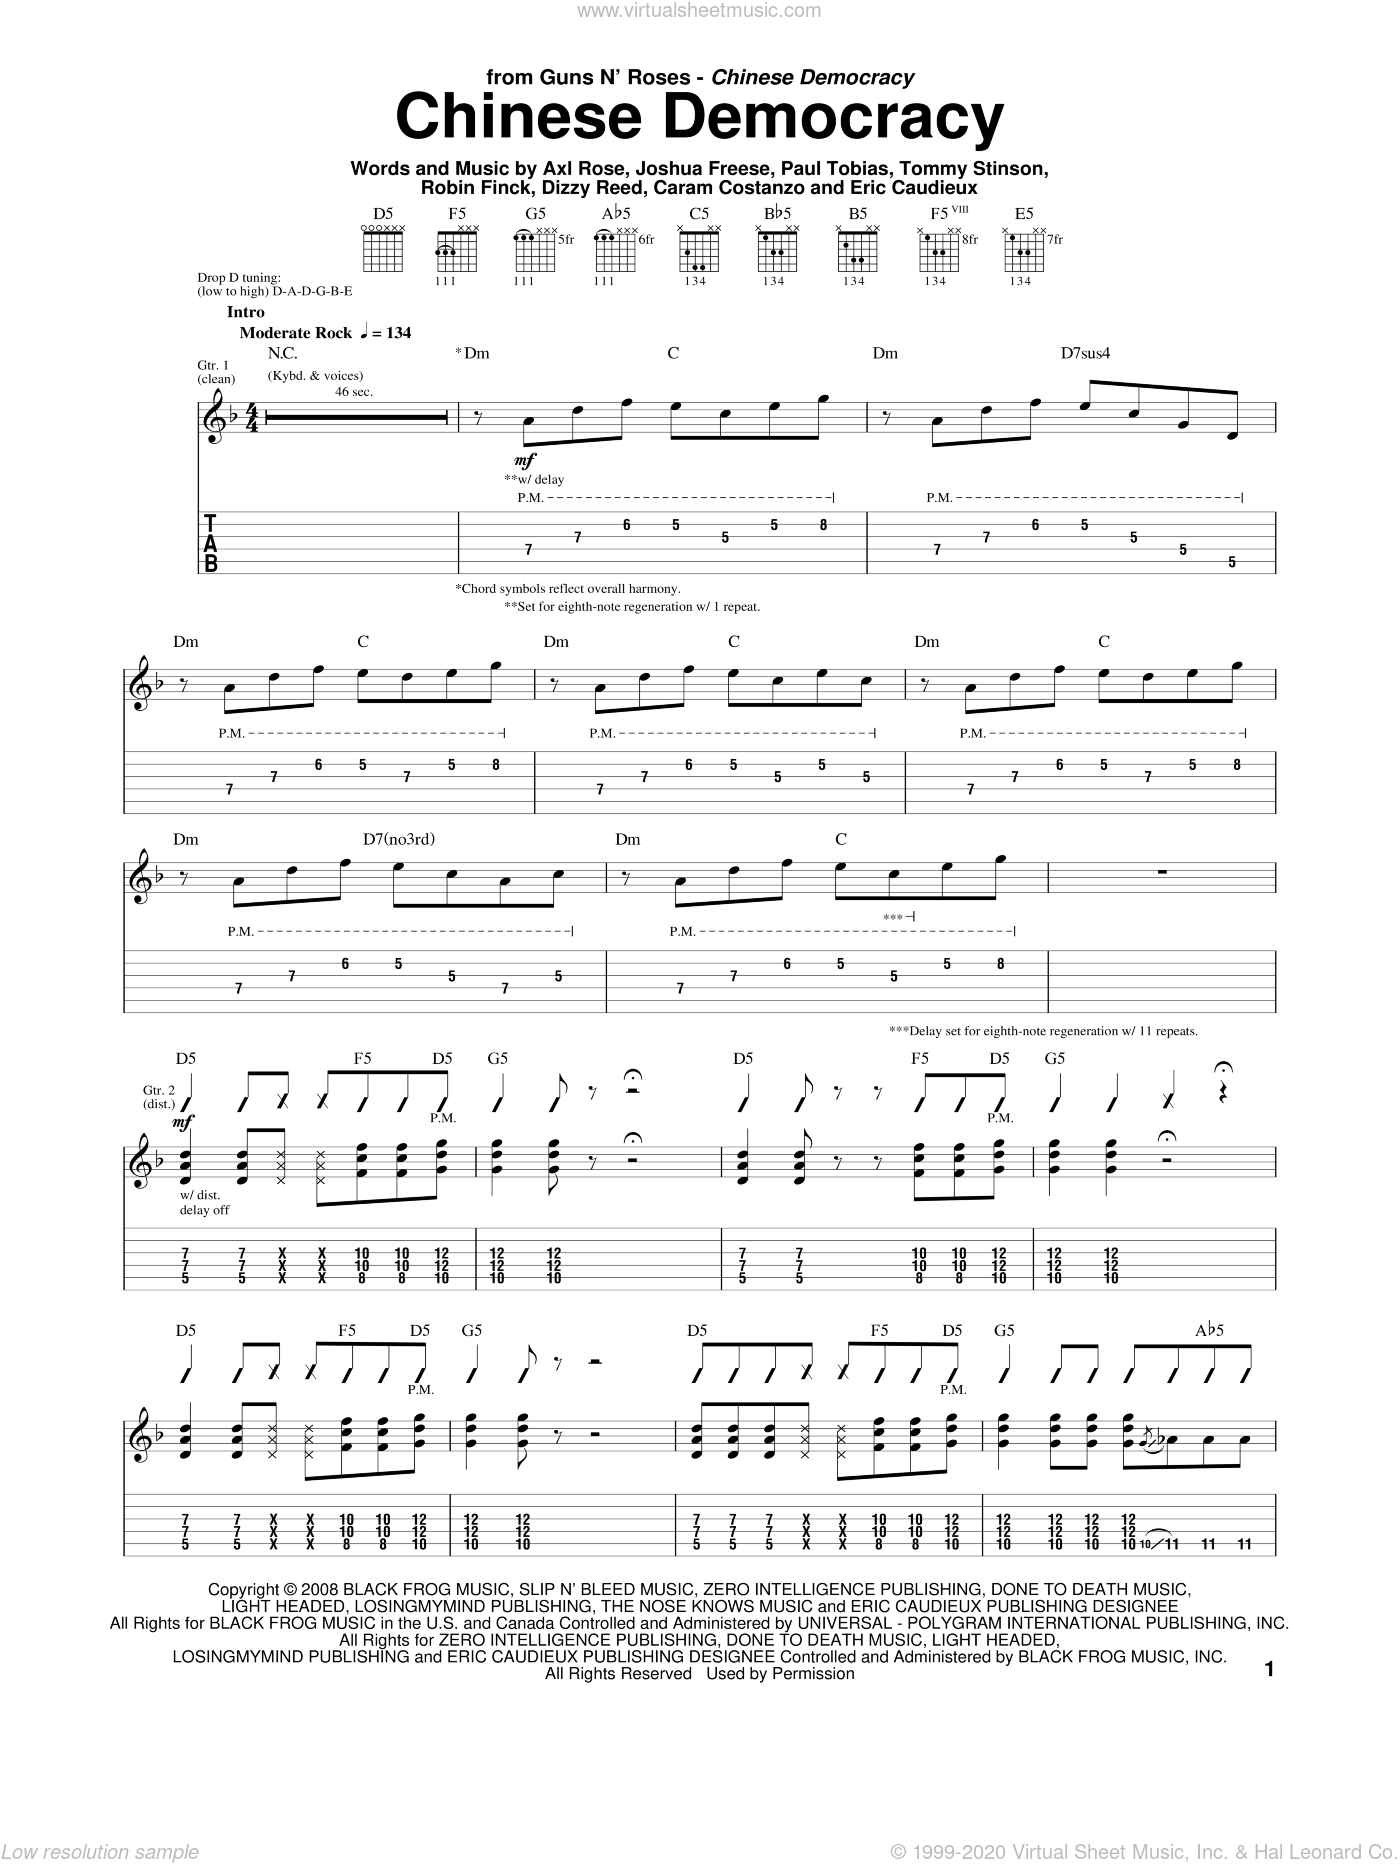 Chinese Democracy sheet music for guitar (tablature) by Guns N' Roses, Axl Rose, Caram Costanzo, Dizzy Reed, Eric Caudieux, Joshua Freese, Paul Tobias, Robin Finck and Tommy Stinson, intermediate skill level